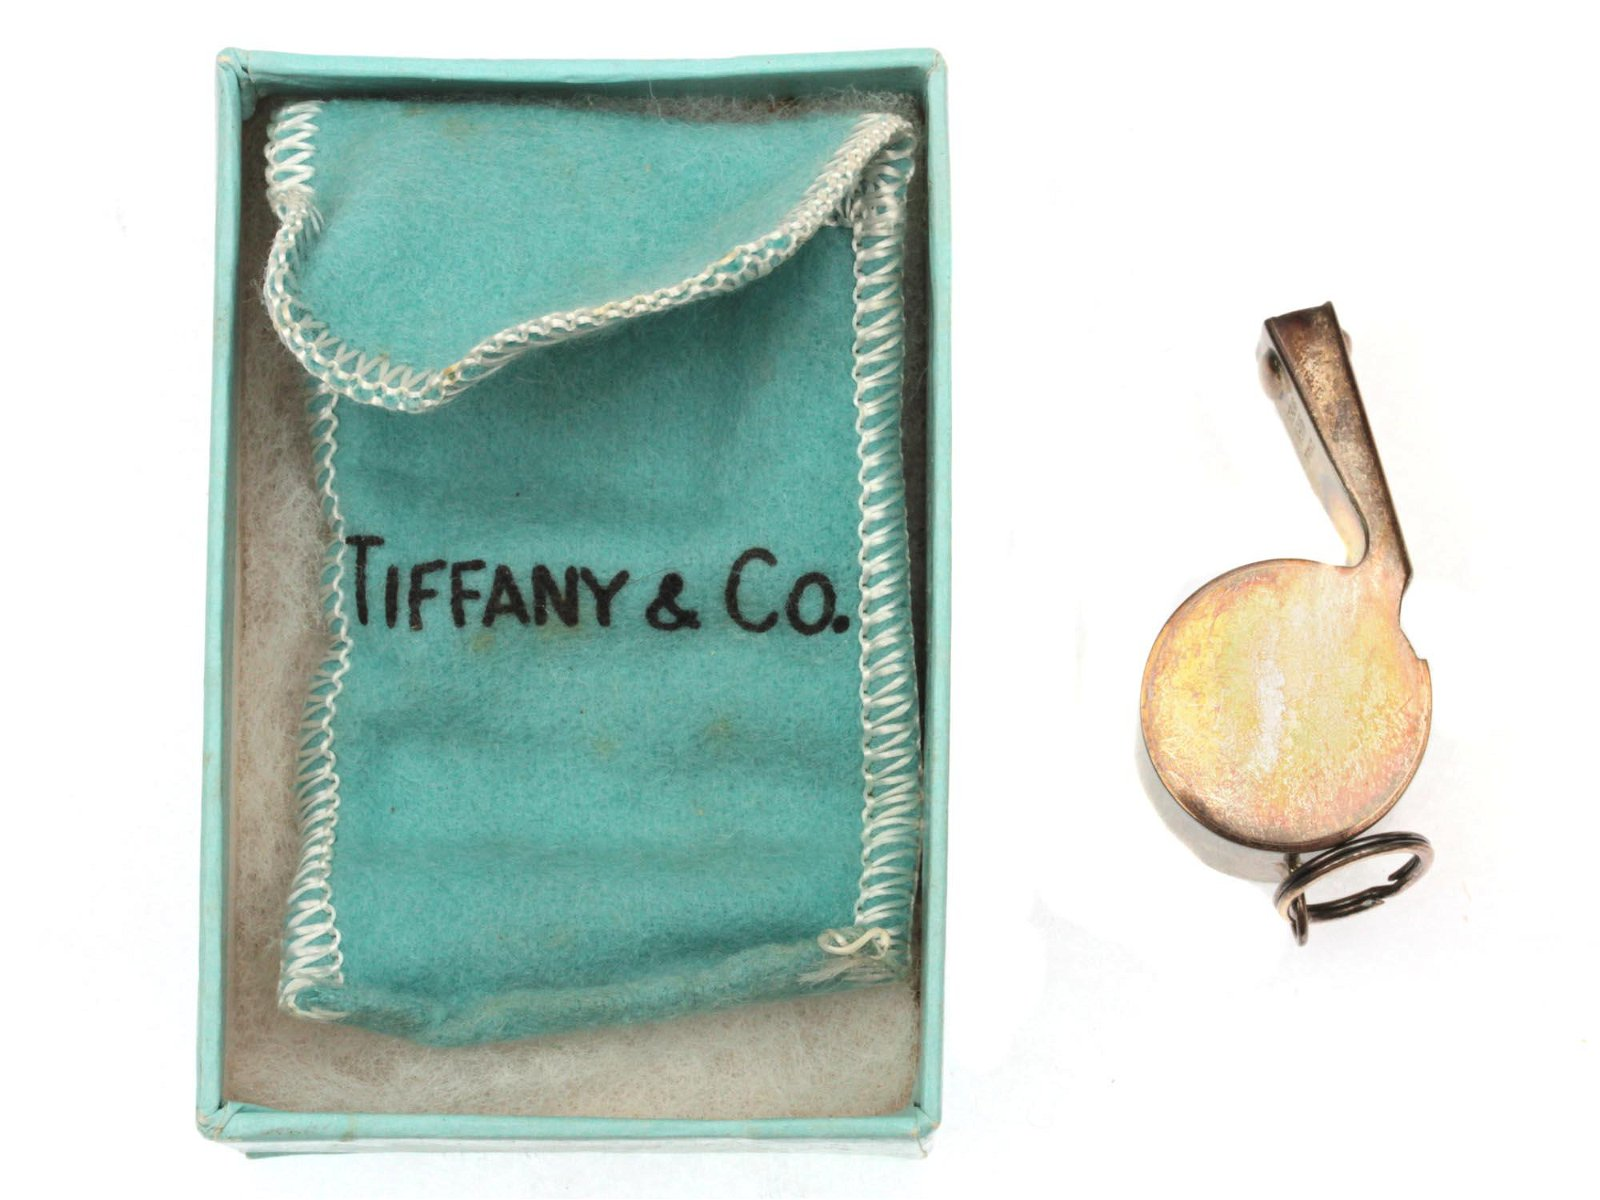 A VINTAGE TIFFANY & CO. STERLING SILVER WHISTLE